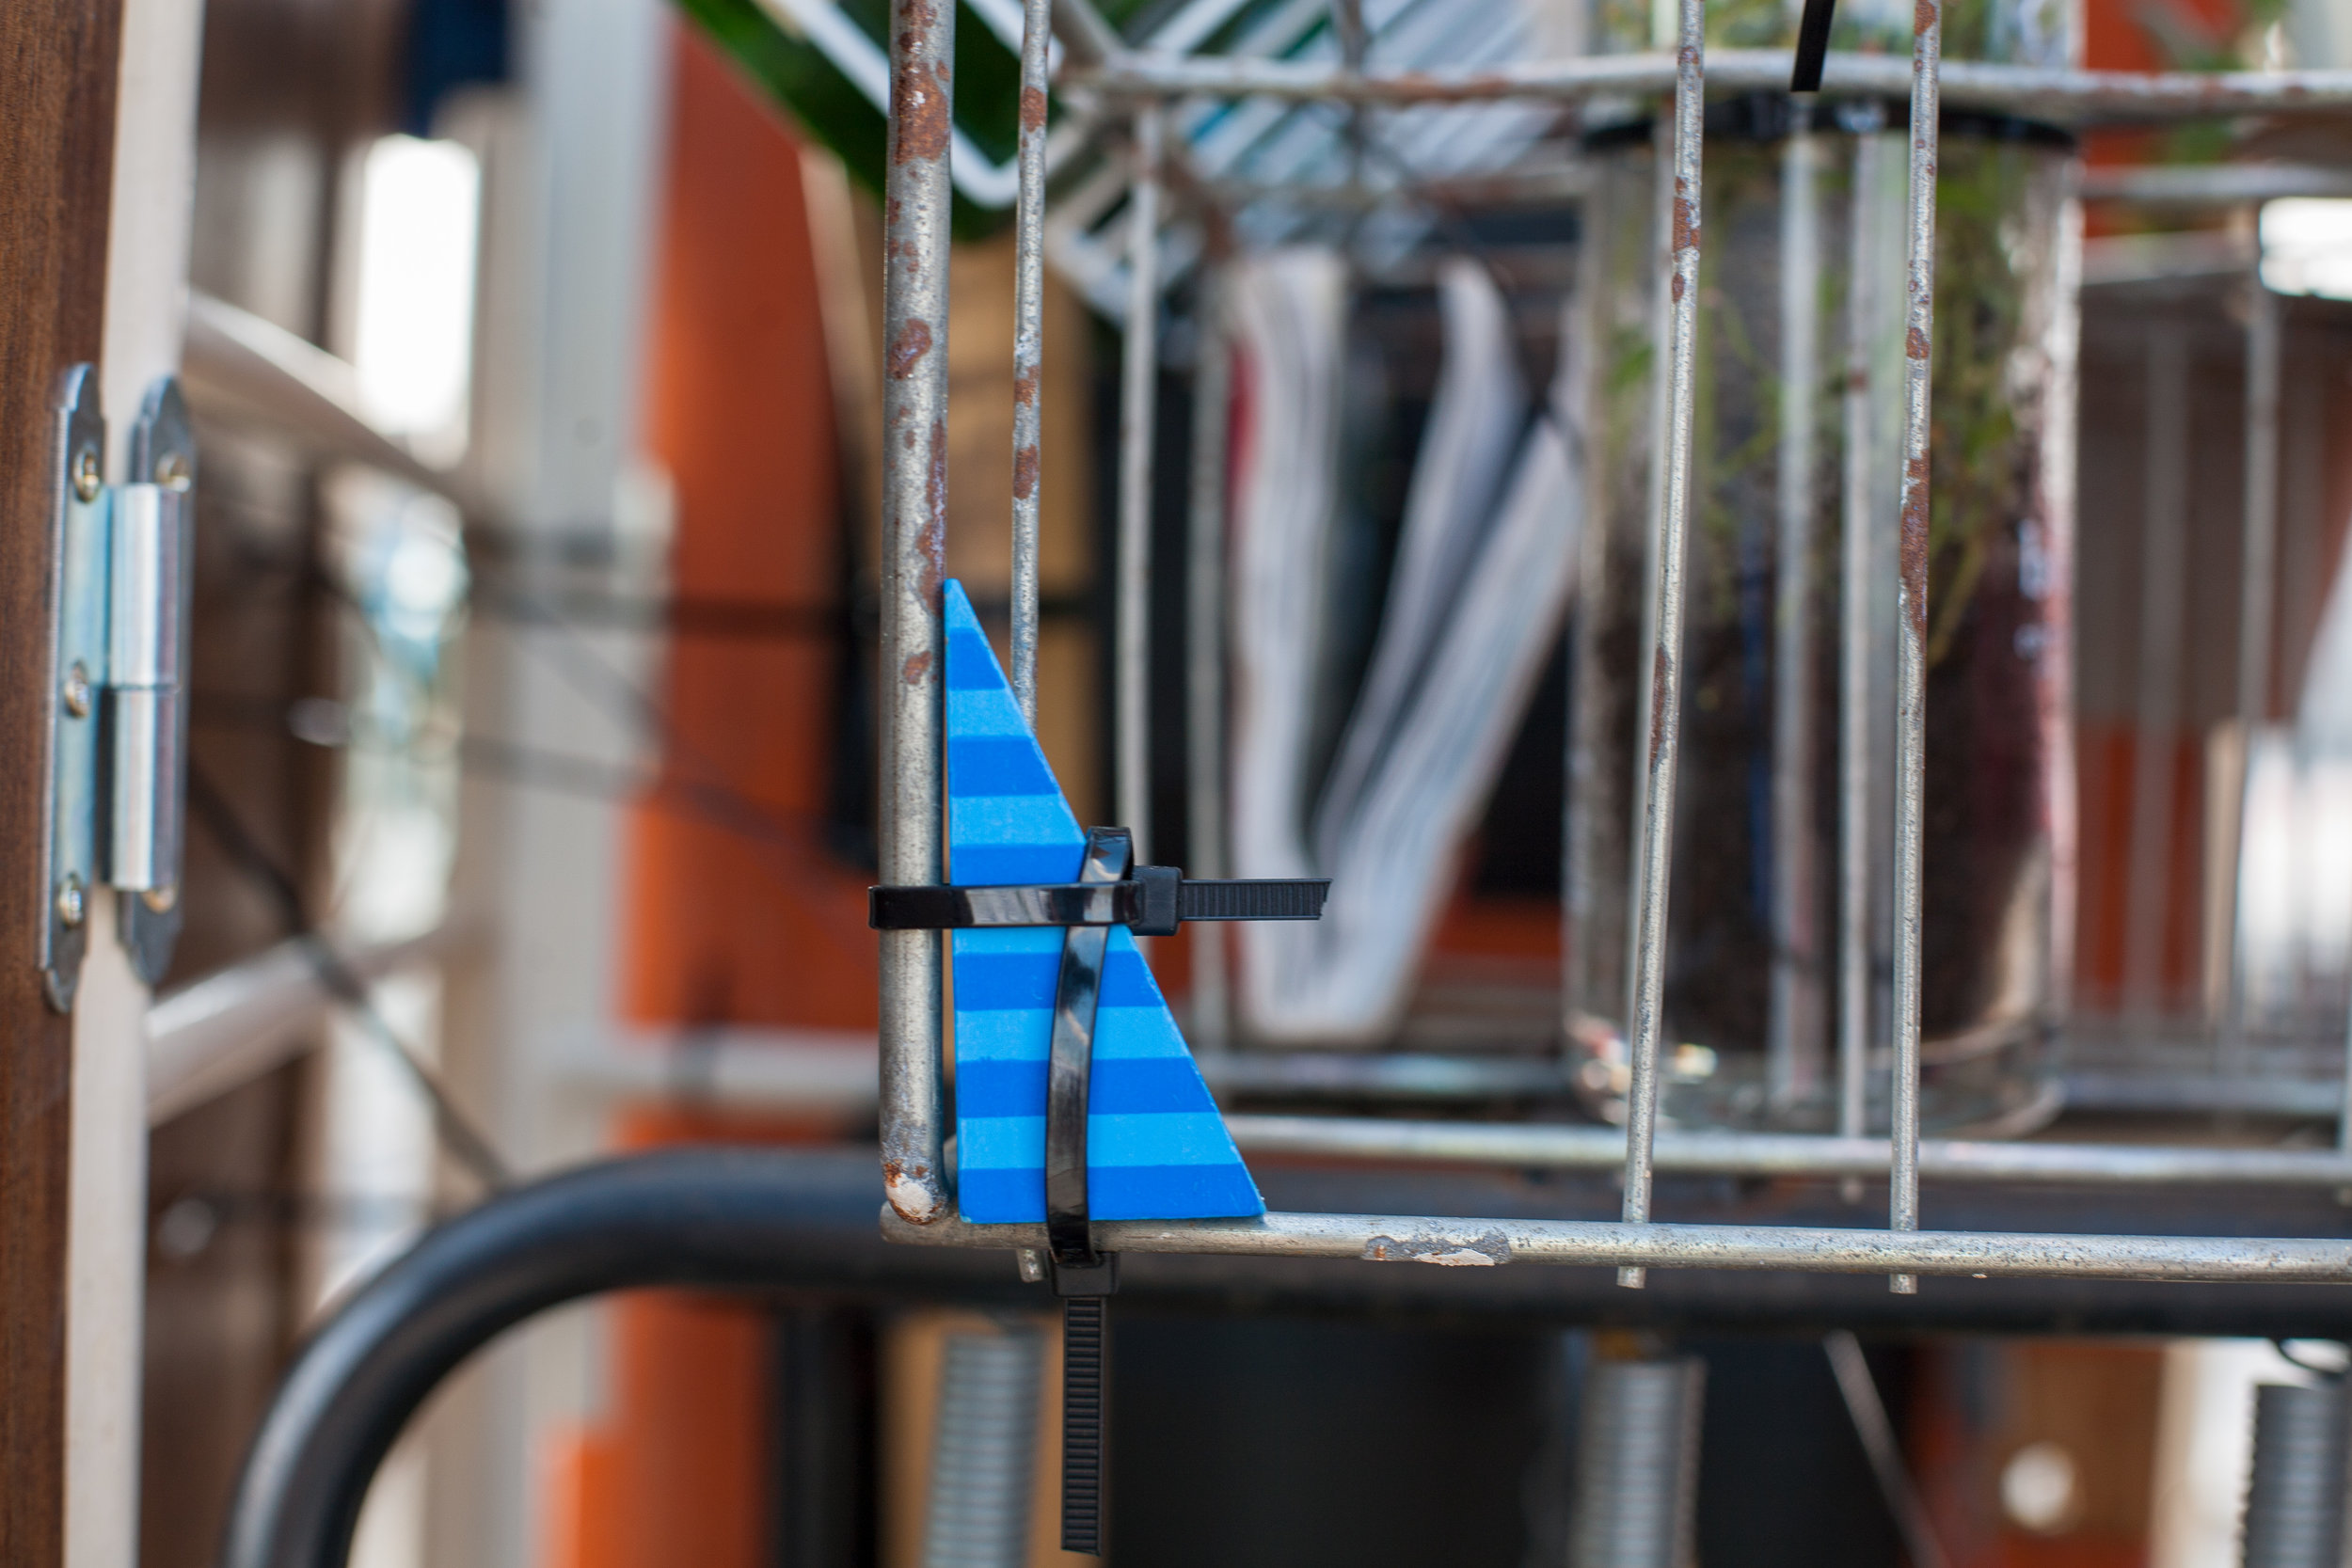 A blue toy detail